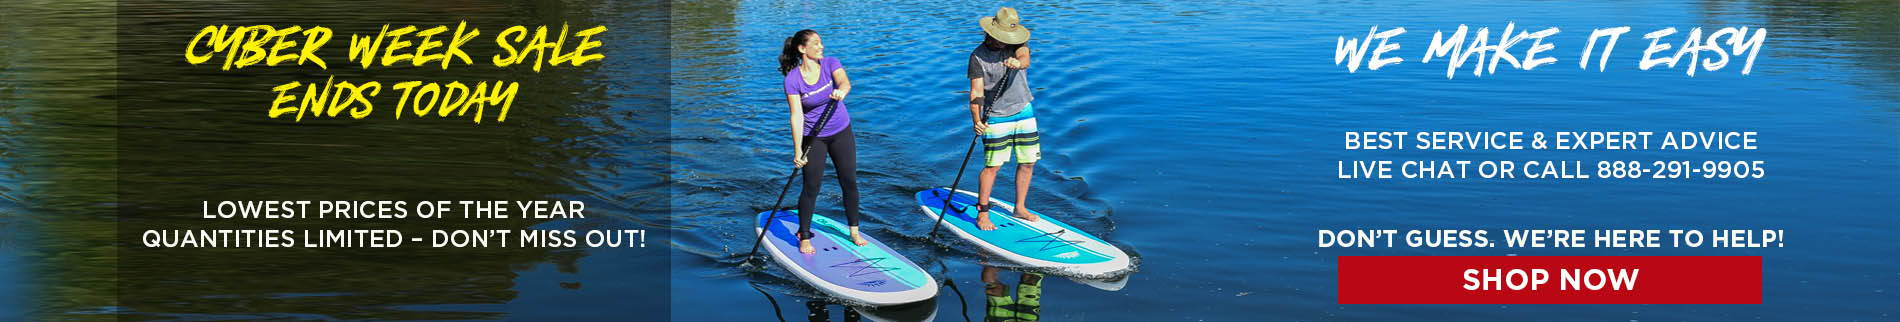 A couple stand up paddle boarding on calm water